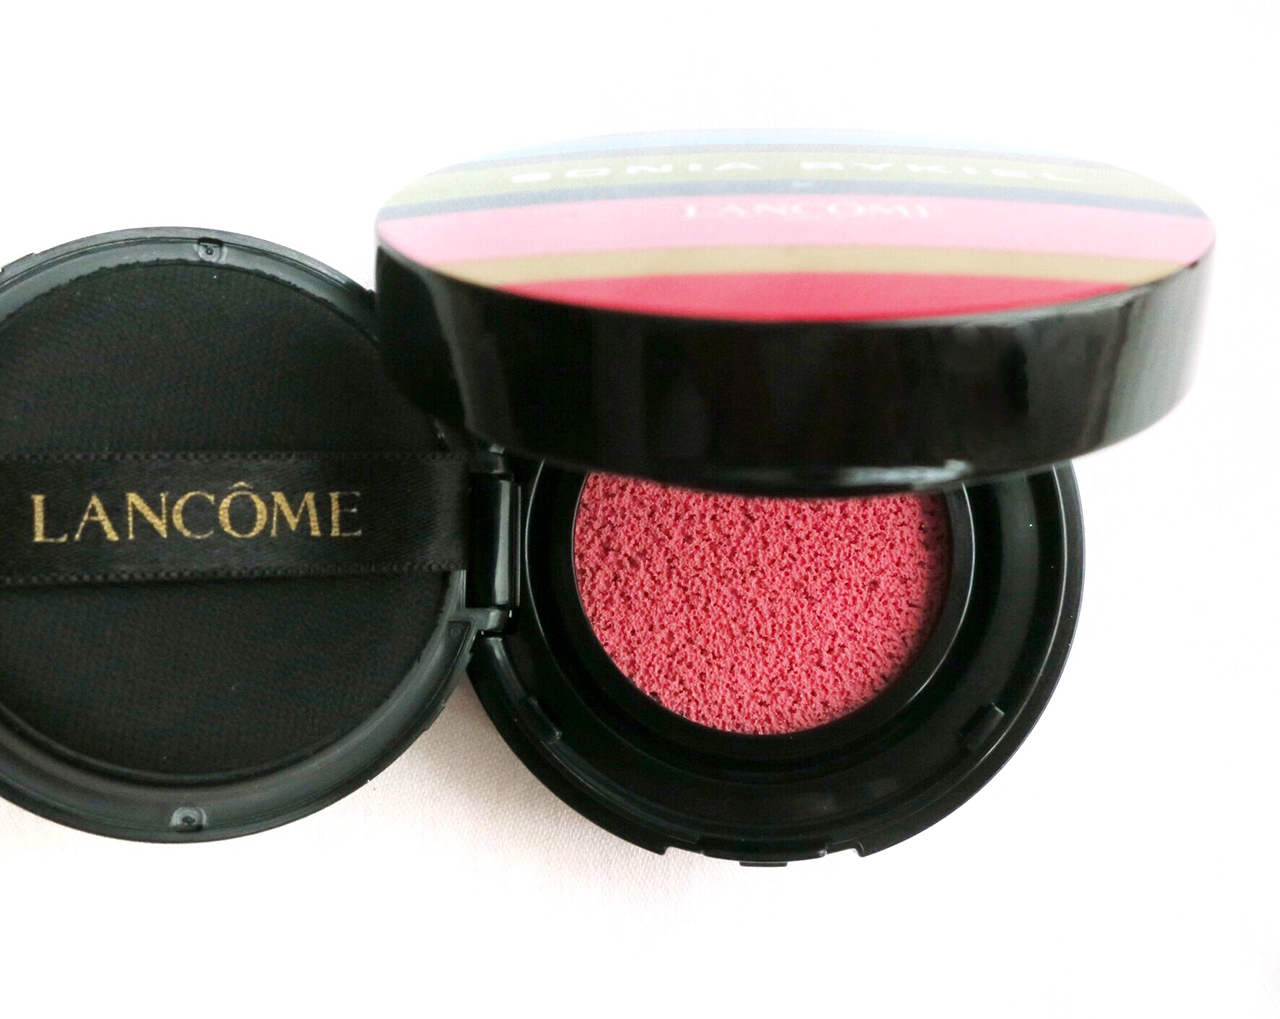 sonia-rykiel-x-lancome-blush-subtil-cushion-splash-coral